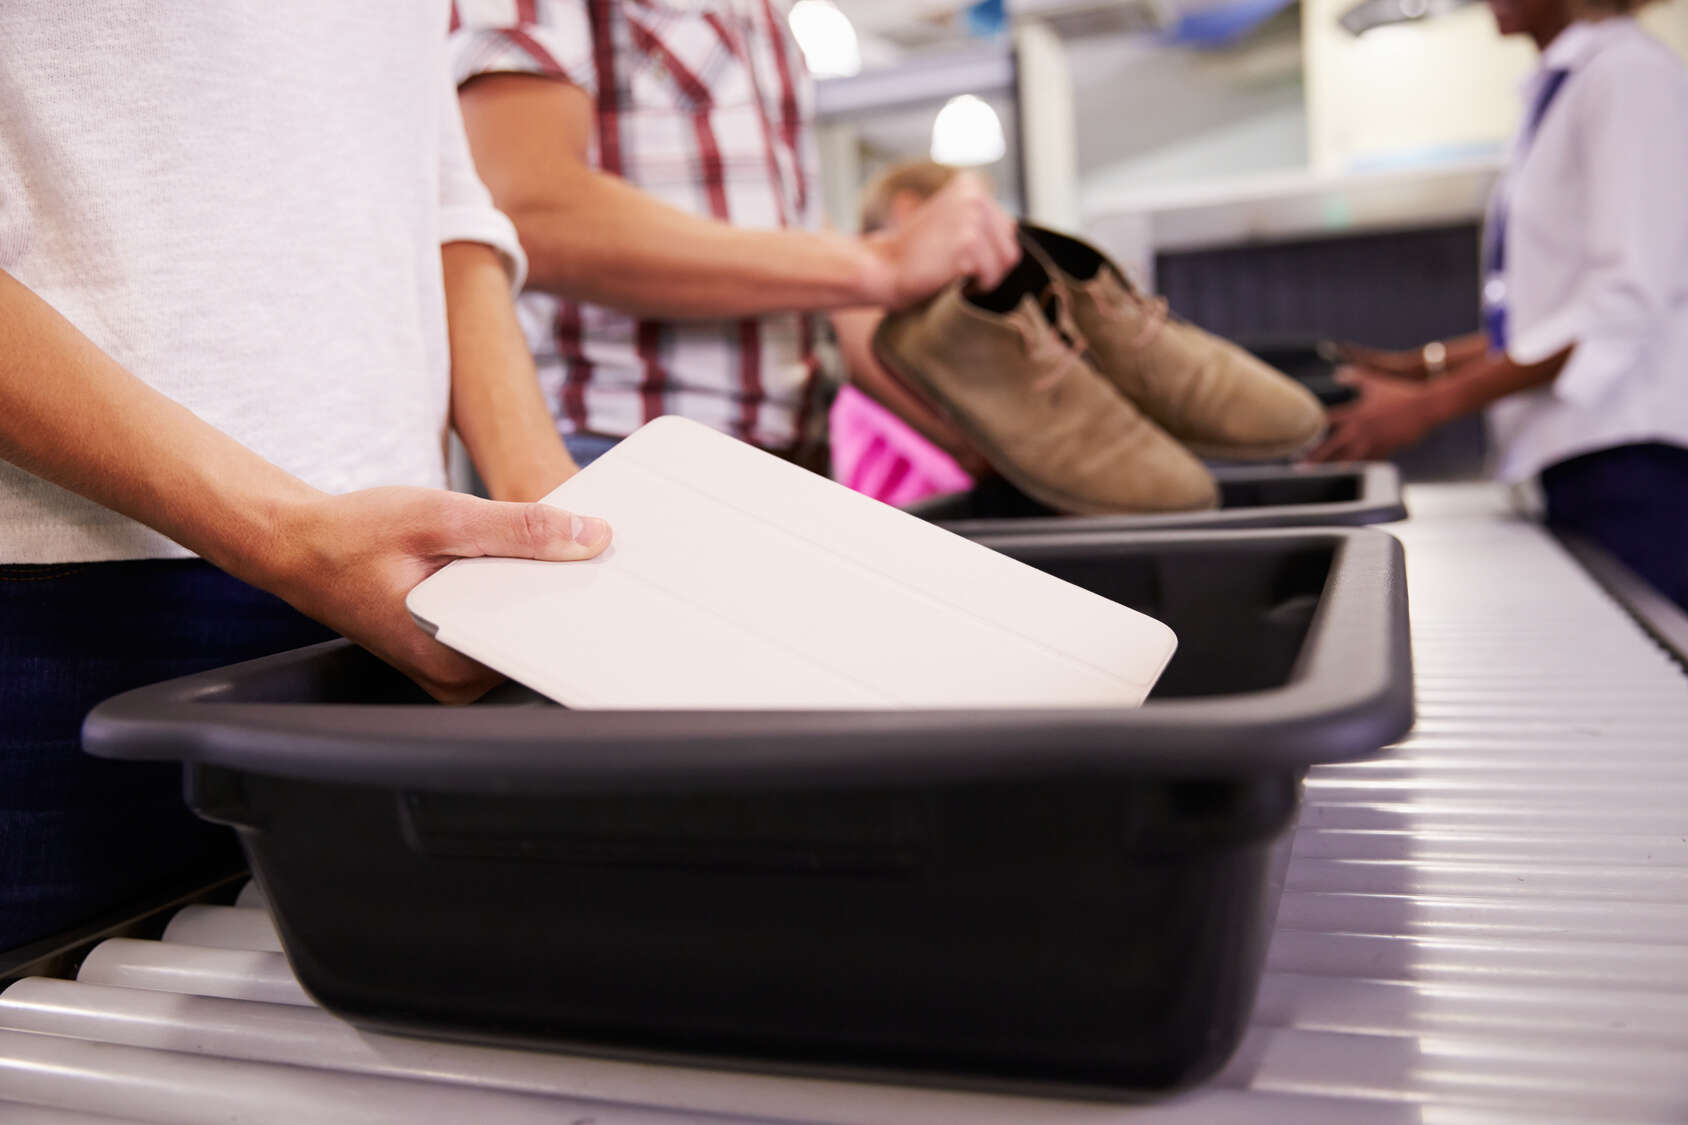 Travel Advisory: Security Screening Delays When Flying Out Of A U.S. Airport